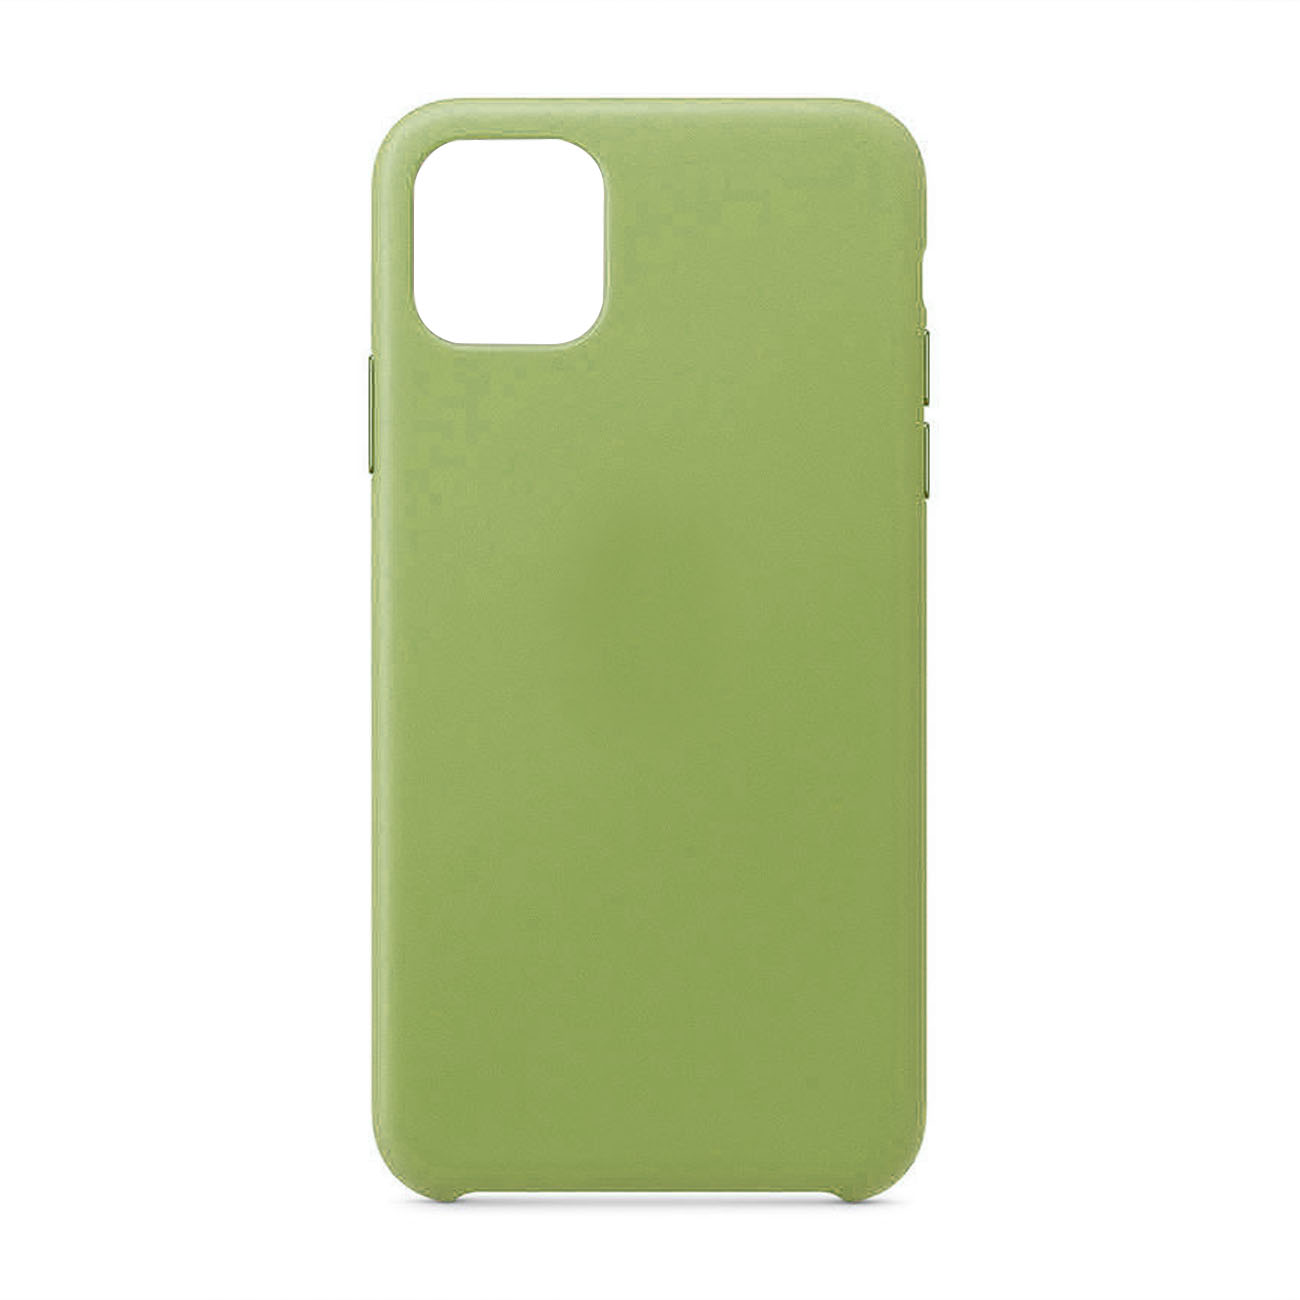 Apple iPhone 11 Pro Gummy Cases In Green